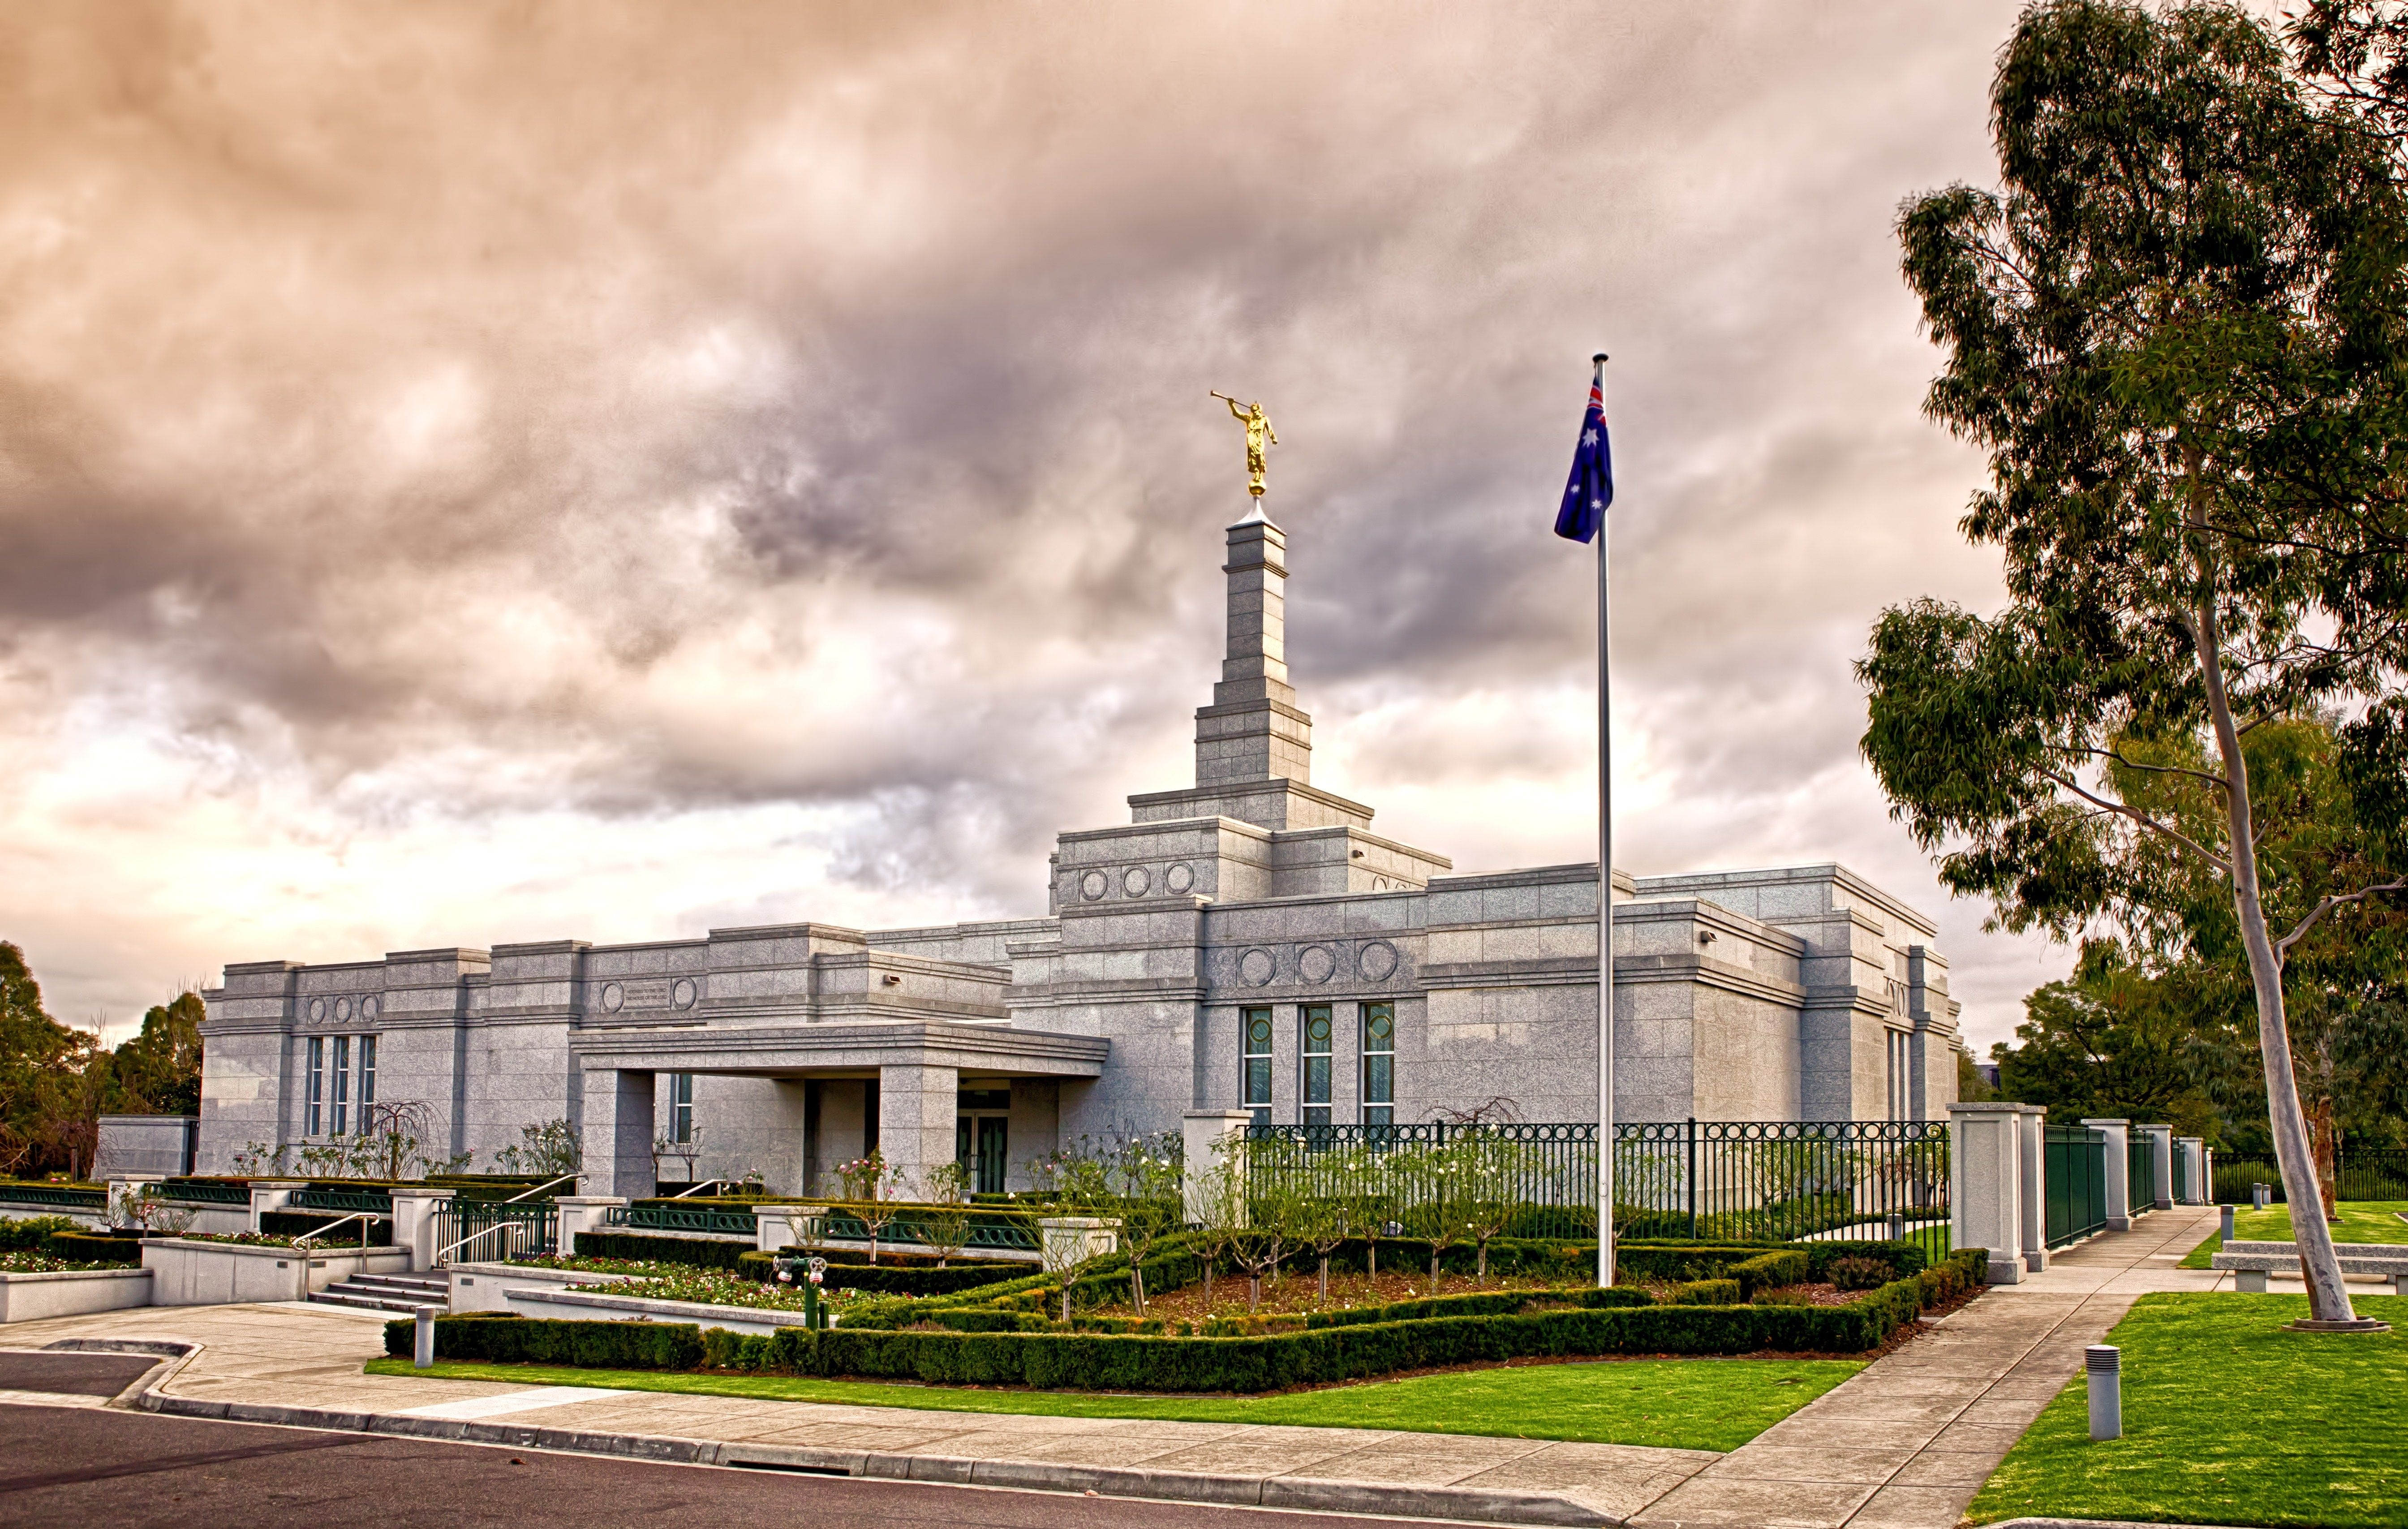 The Melbourne Australia Temple, including the entrance and scenery.